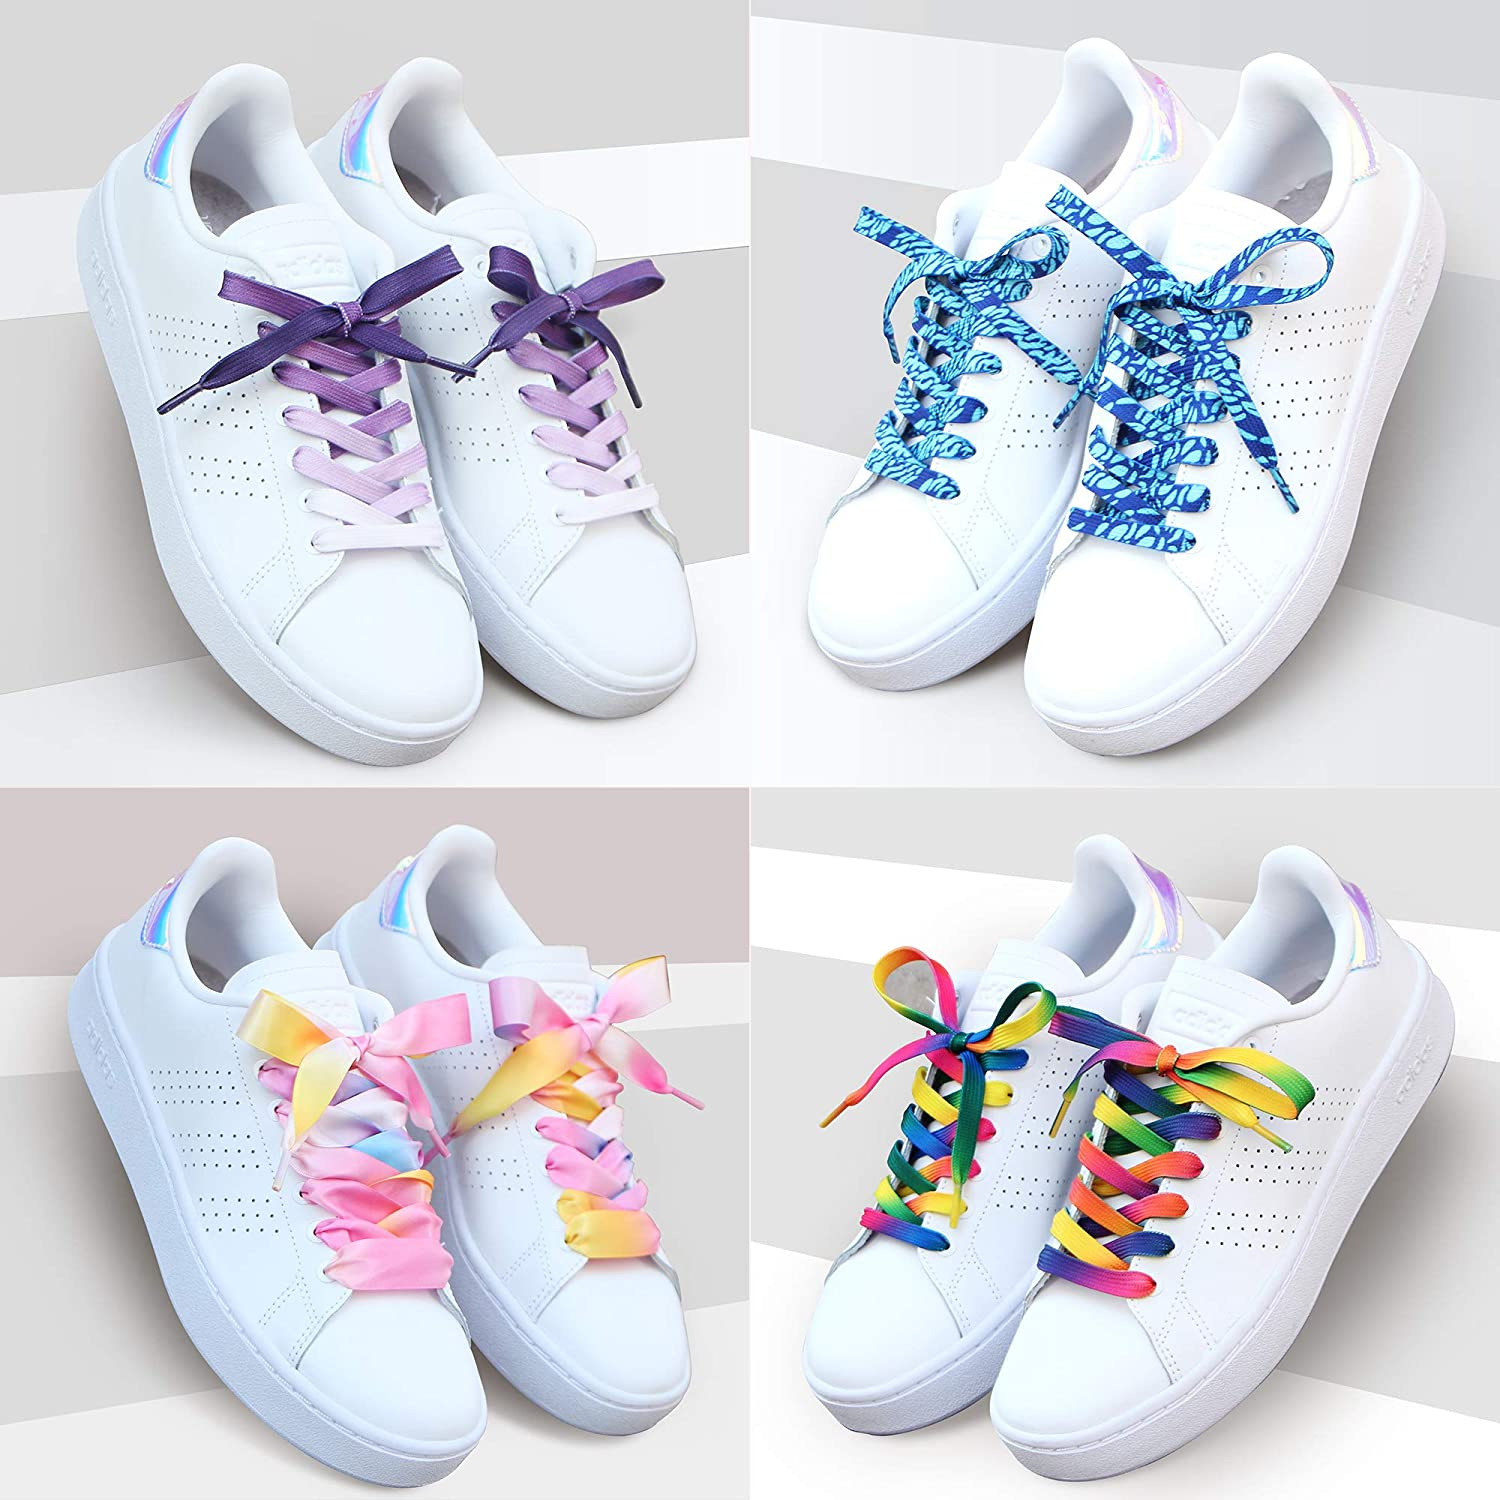 5Chaos Vibrant Shoelaces for Fun Cool Design with Metal Aglets 1 Pair